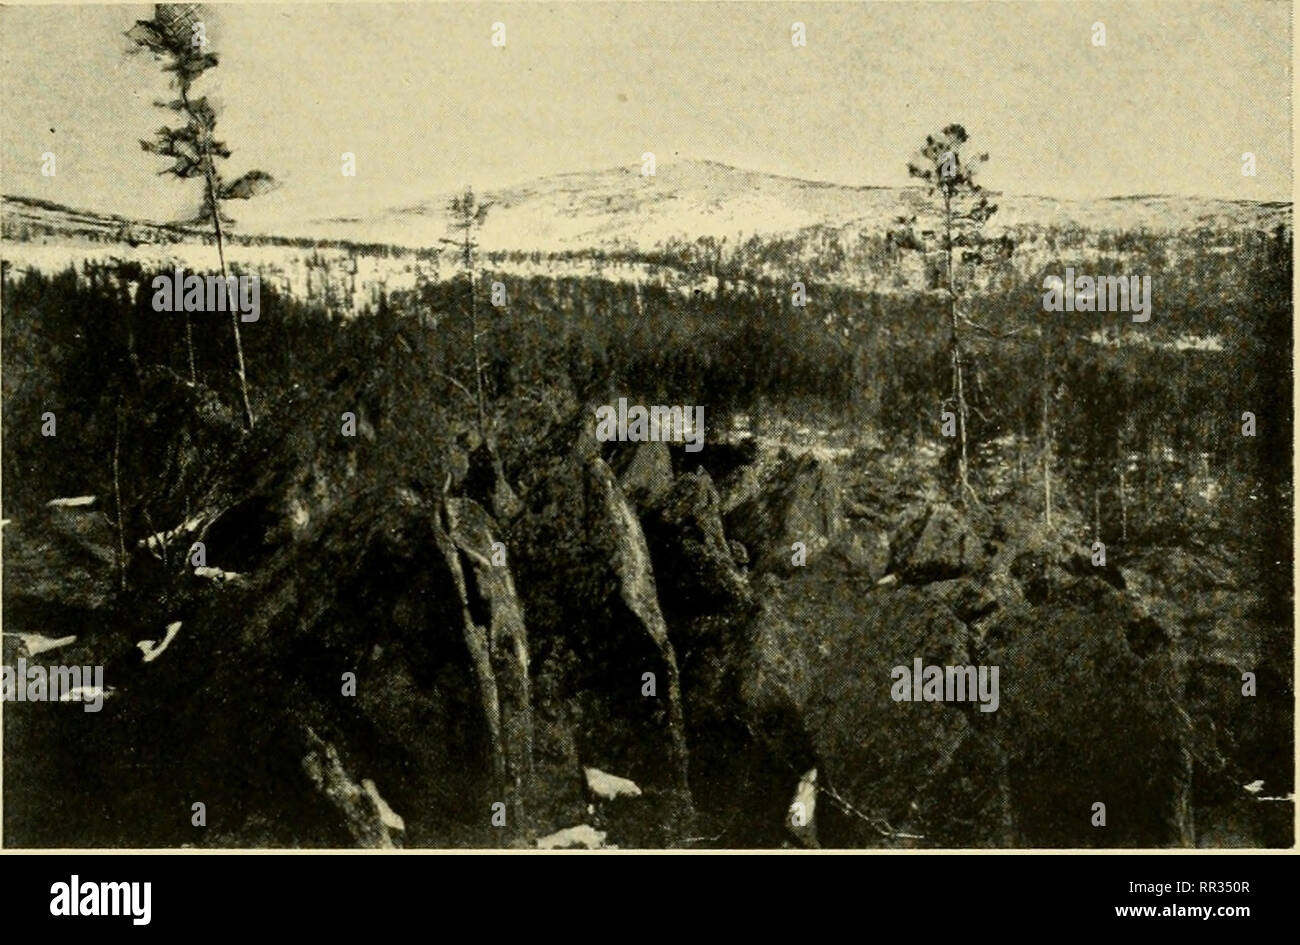 . Acta Soc. pro Fauna et Flora Fennica. Natural history. Acta Soc. Fauna et Fl. Fenn., 39, N:o 6. C. Finnild. Tavla I.. Salla 26. V. 1914. Foto C. F. Bild 1. Rohmoiva fjall (674 m) sett frdn Sallatunturi. I bakgranden synes barr- och bjorkskogsgrdnsen.. Please note that these images are extracted from scanned page images that may have been digitally enhanced for readability - coloration and appearance of these illustrations may not perfectly resemble the original work.. Societas pro Fauna et Flora Fennica; Societas pro Fauna et Flora Fennica. Acta Societatis pro Fauna et Flora Fennica. Helsink Stock Photo